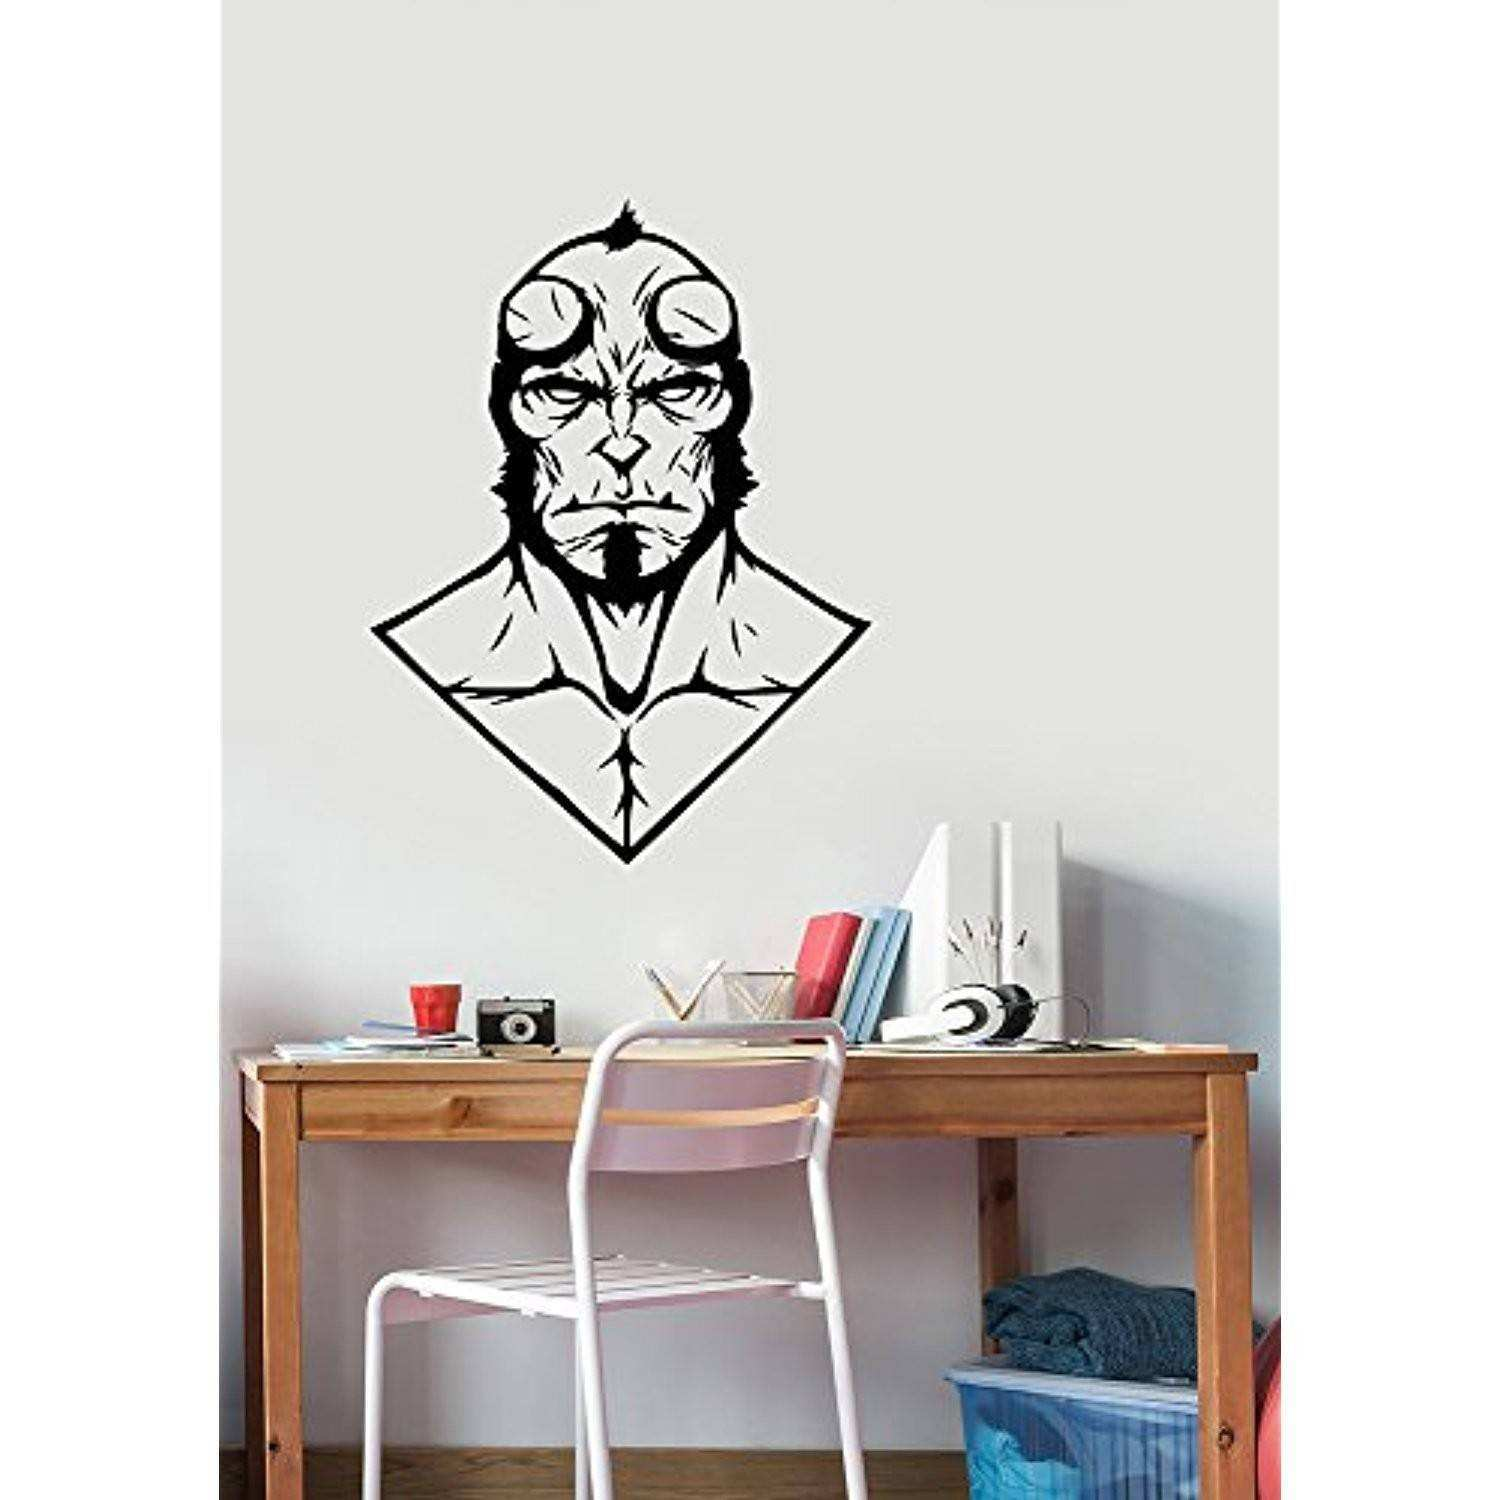 Superhero Bedroom Decor Awesome Wall Decals for Bedroom Unique 1